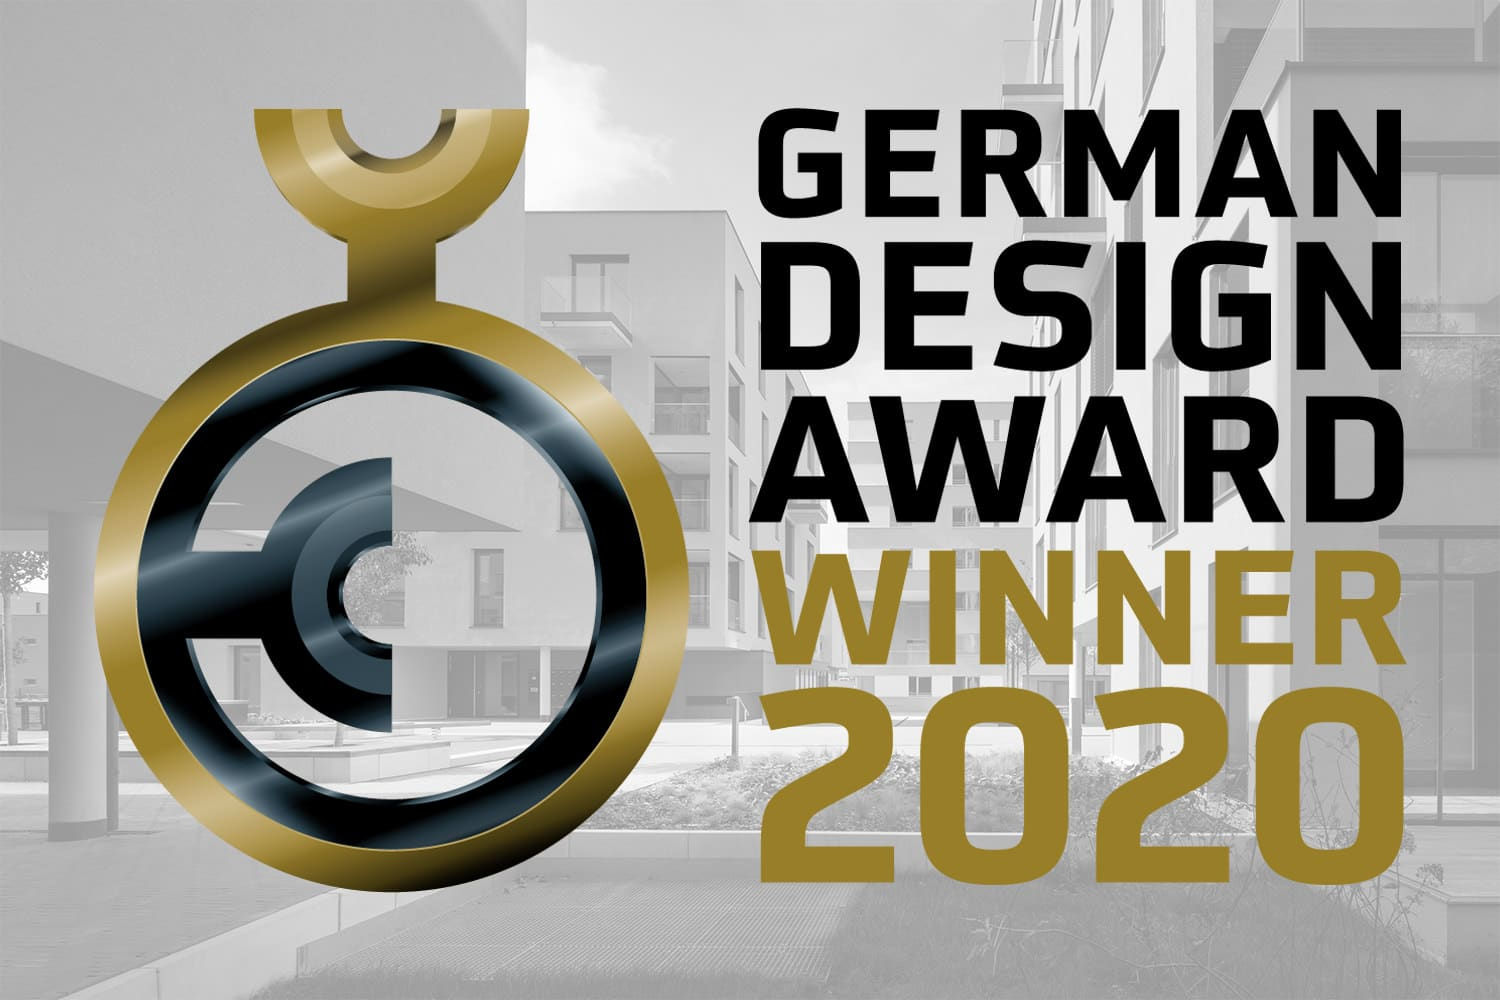 German Design Award, Quartier Riedenburg Winner 2020